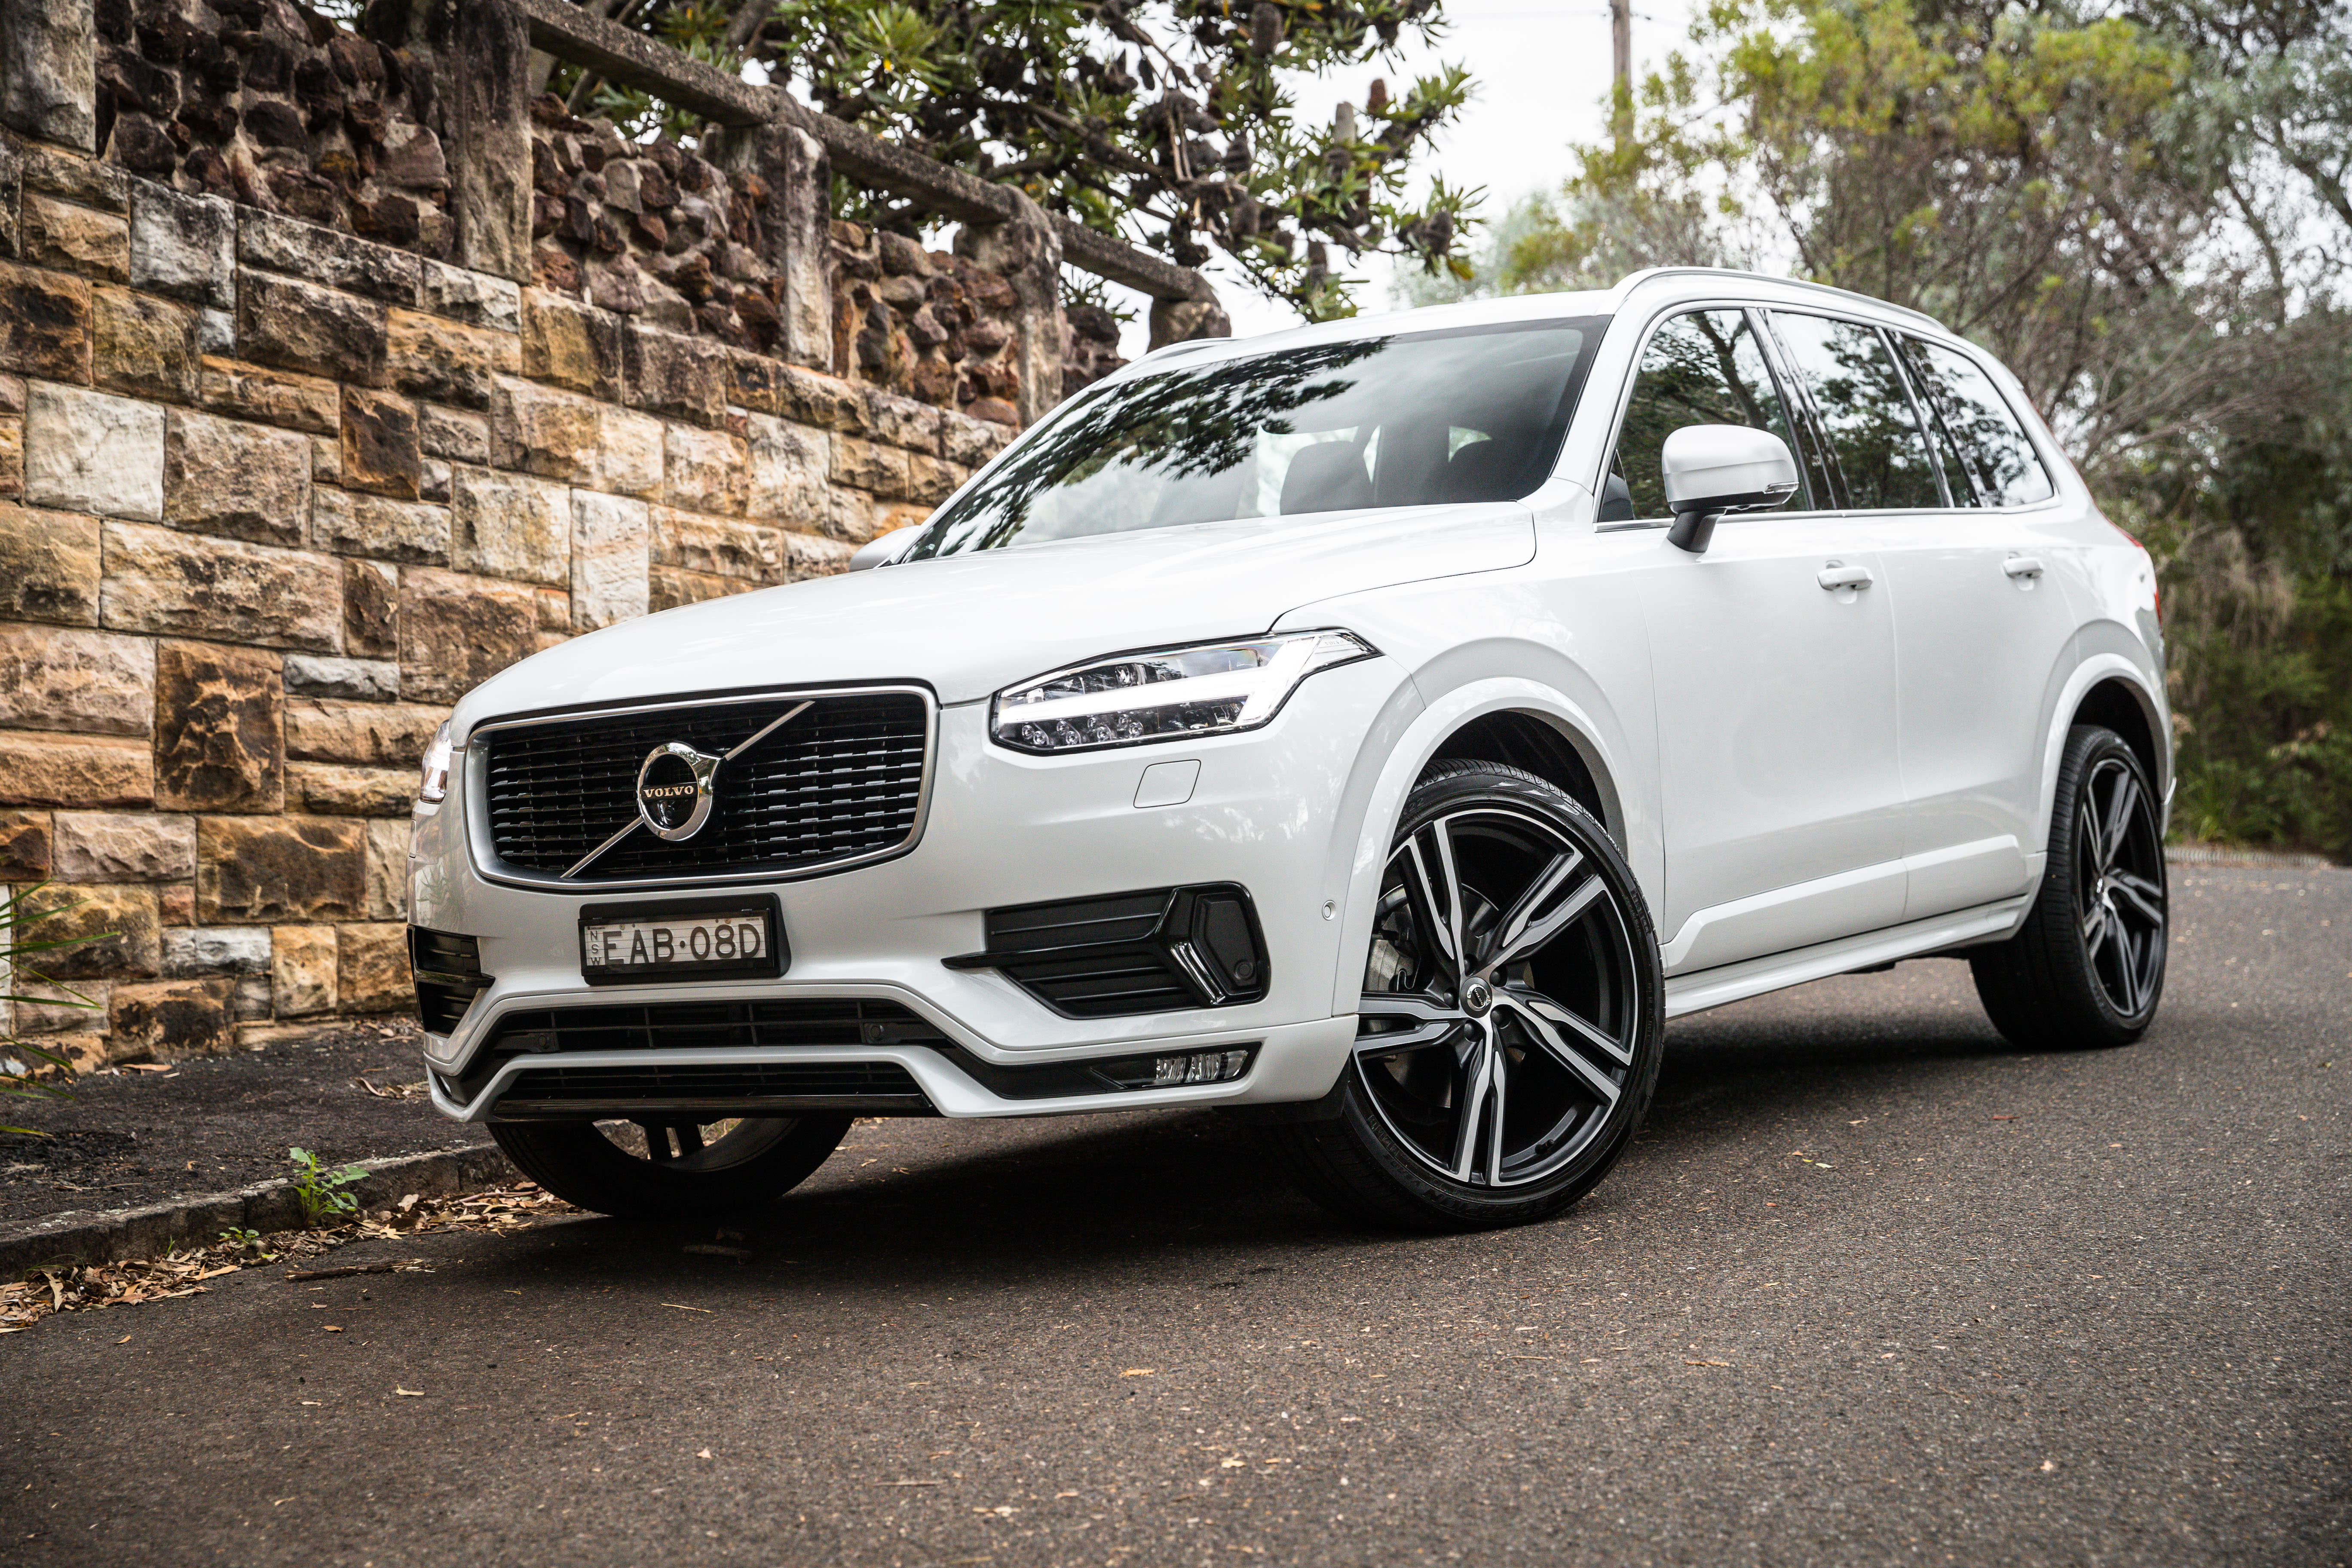 2019 Volvo XC90 long-term review: Urban driving | CarAdvice